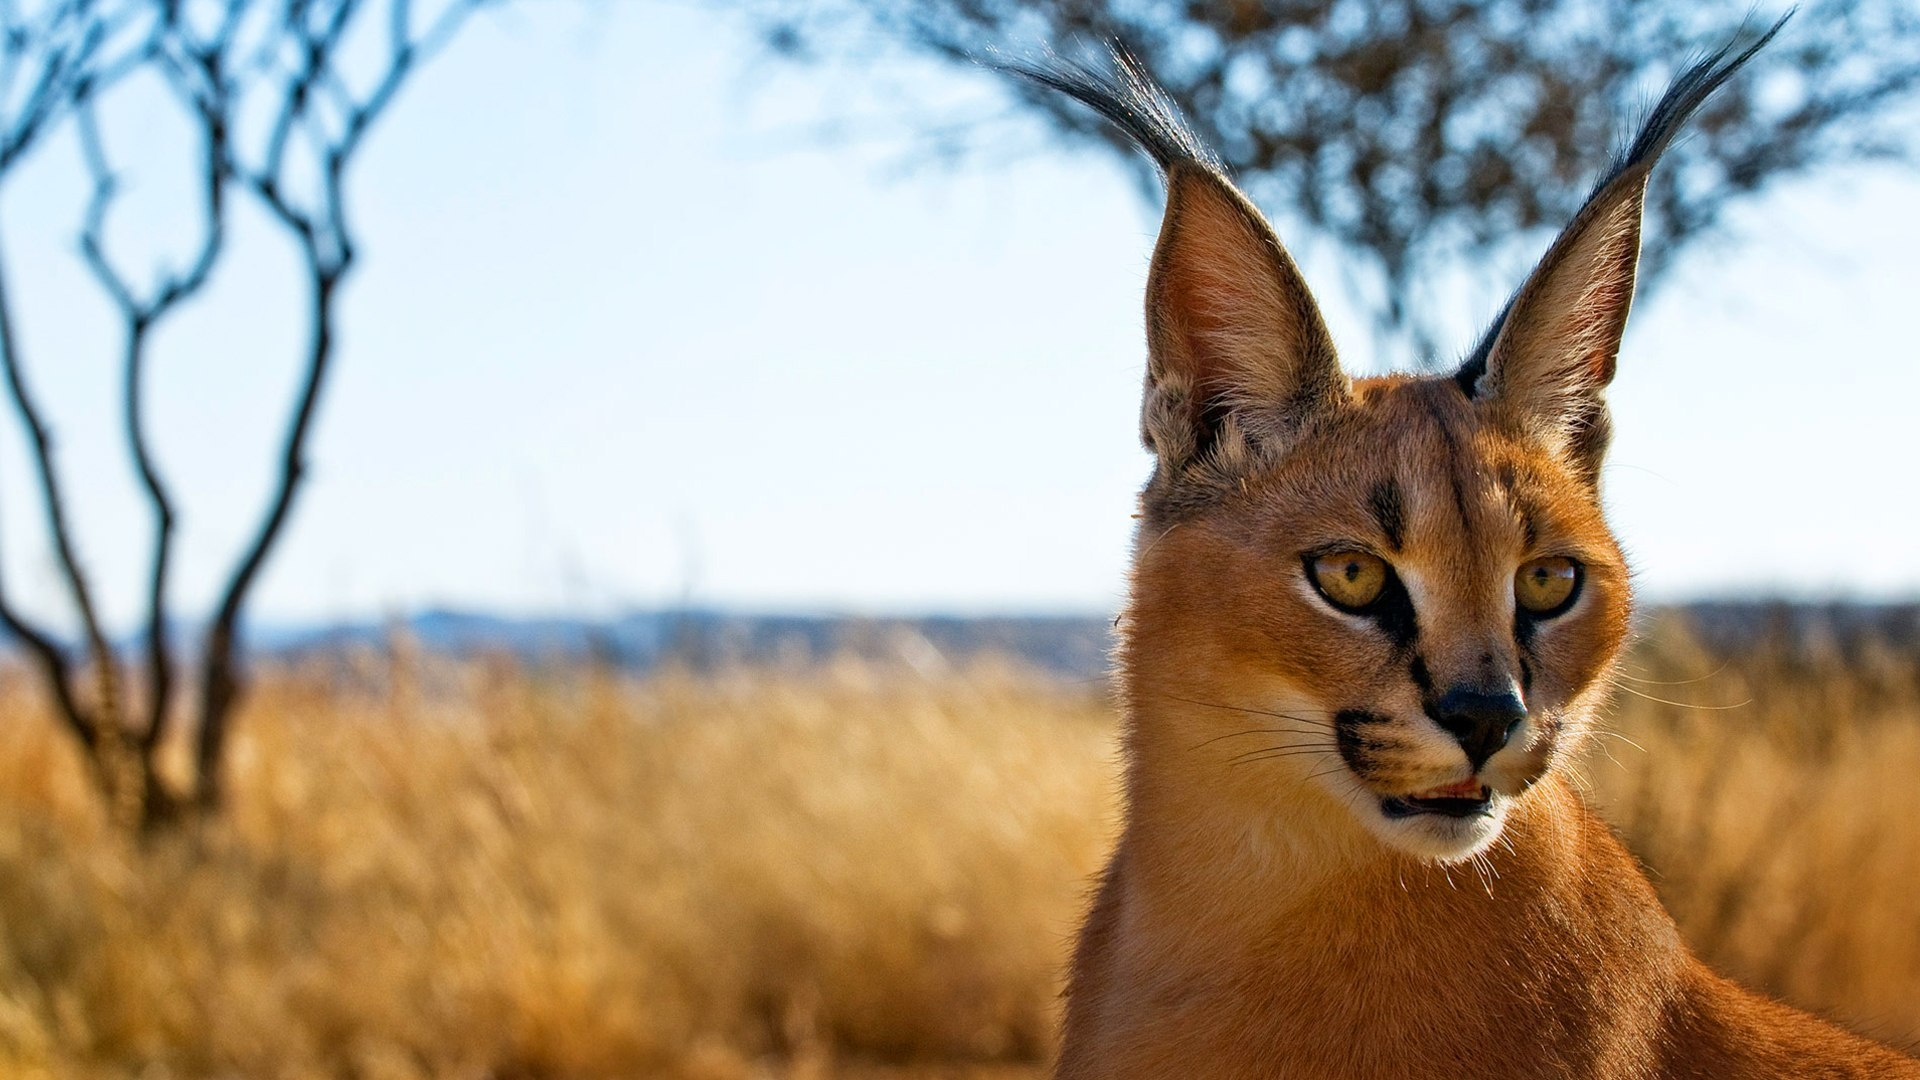 Cute Cat Hd Wallpaper Download 31 Caracal Hd Wallpapers Background Images Wallpaper Abyss